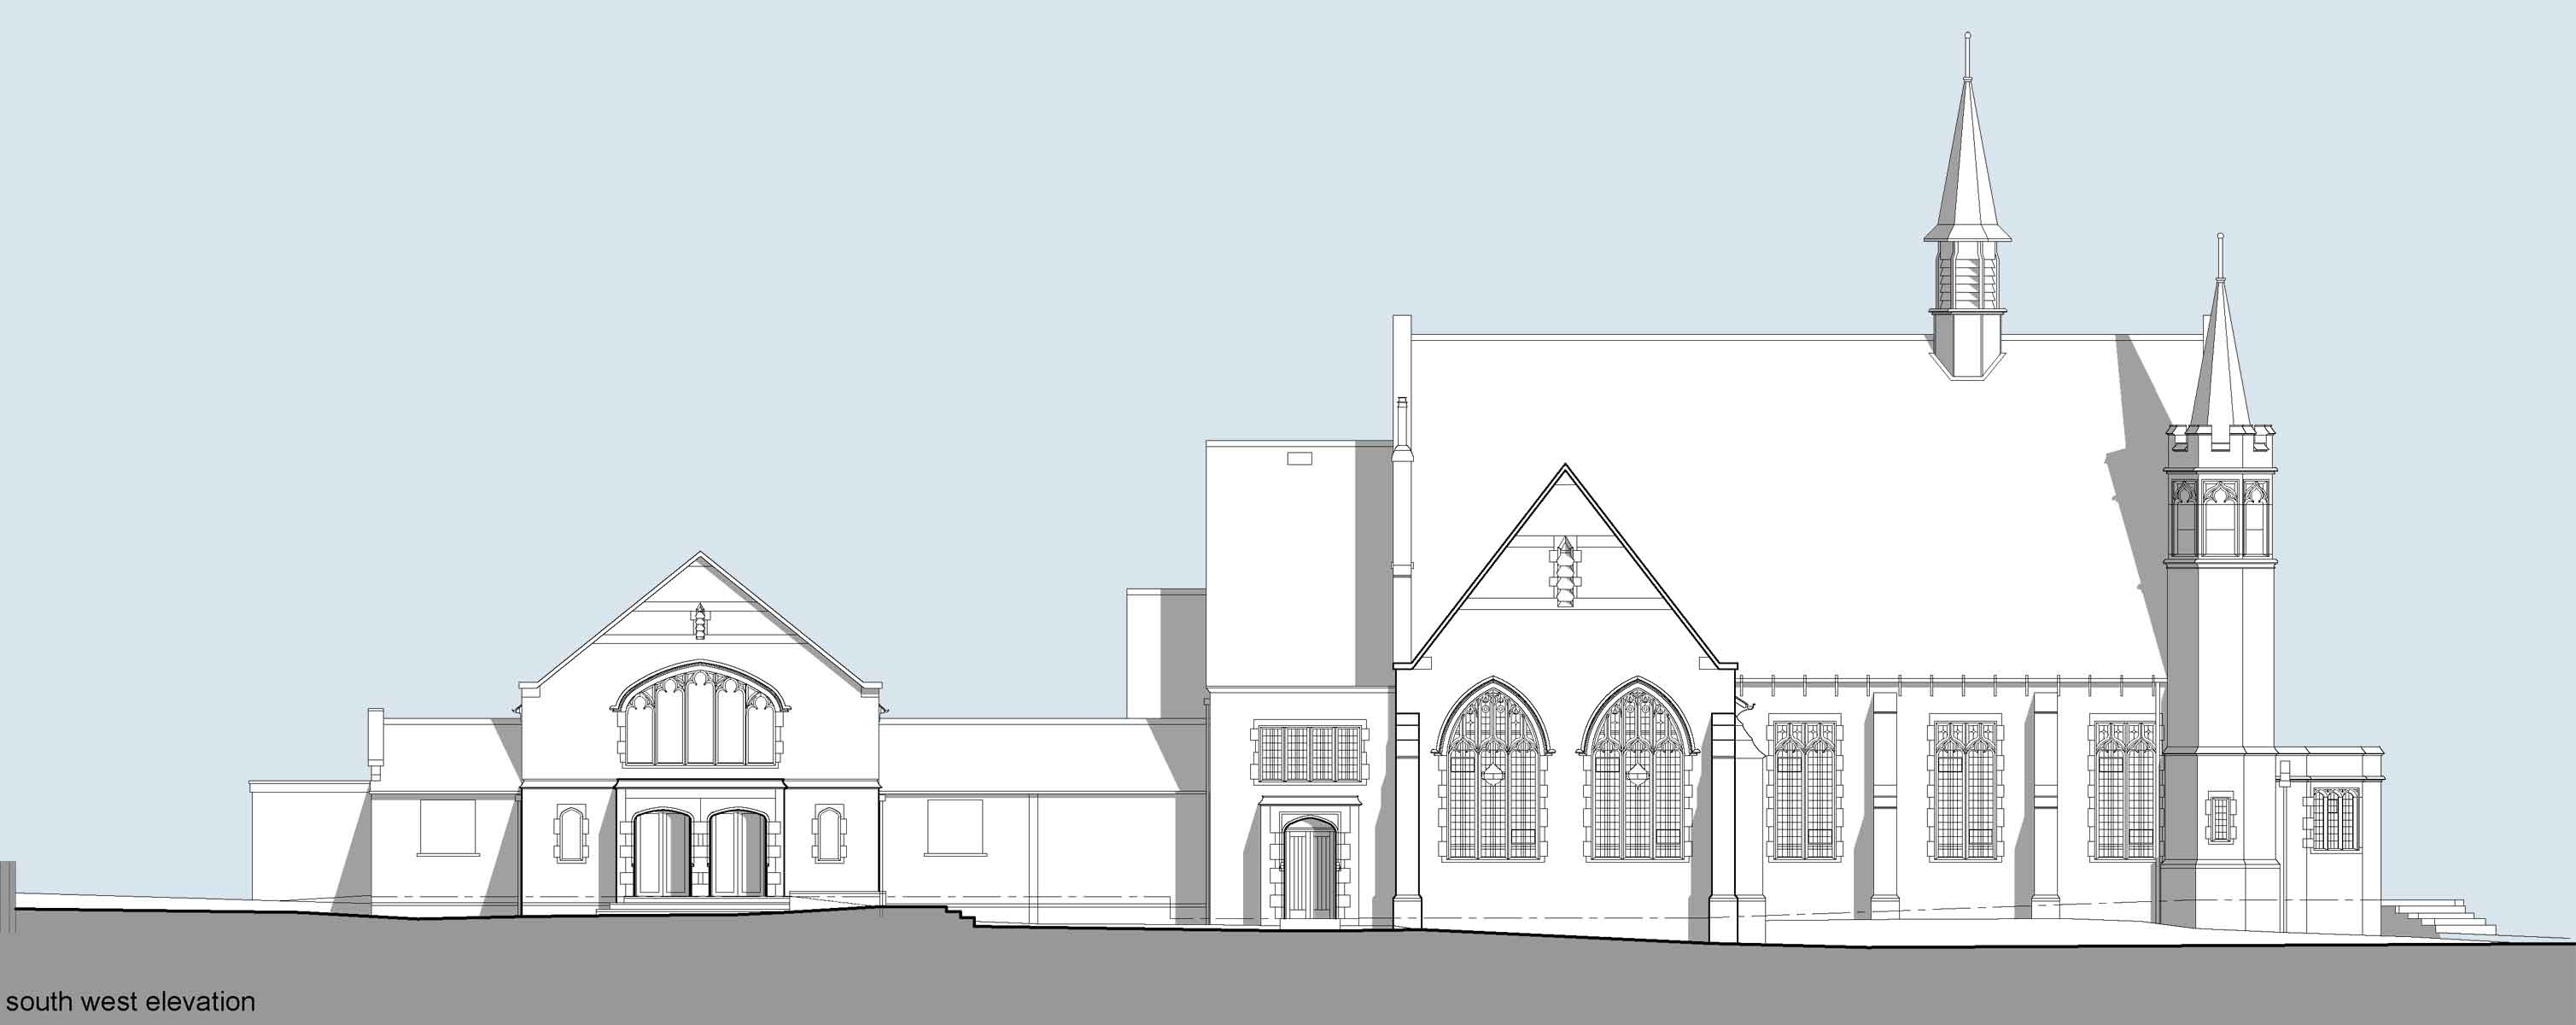 stubbin lane existing elevation sketch drawing of firth park methodist church